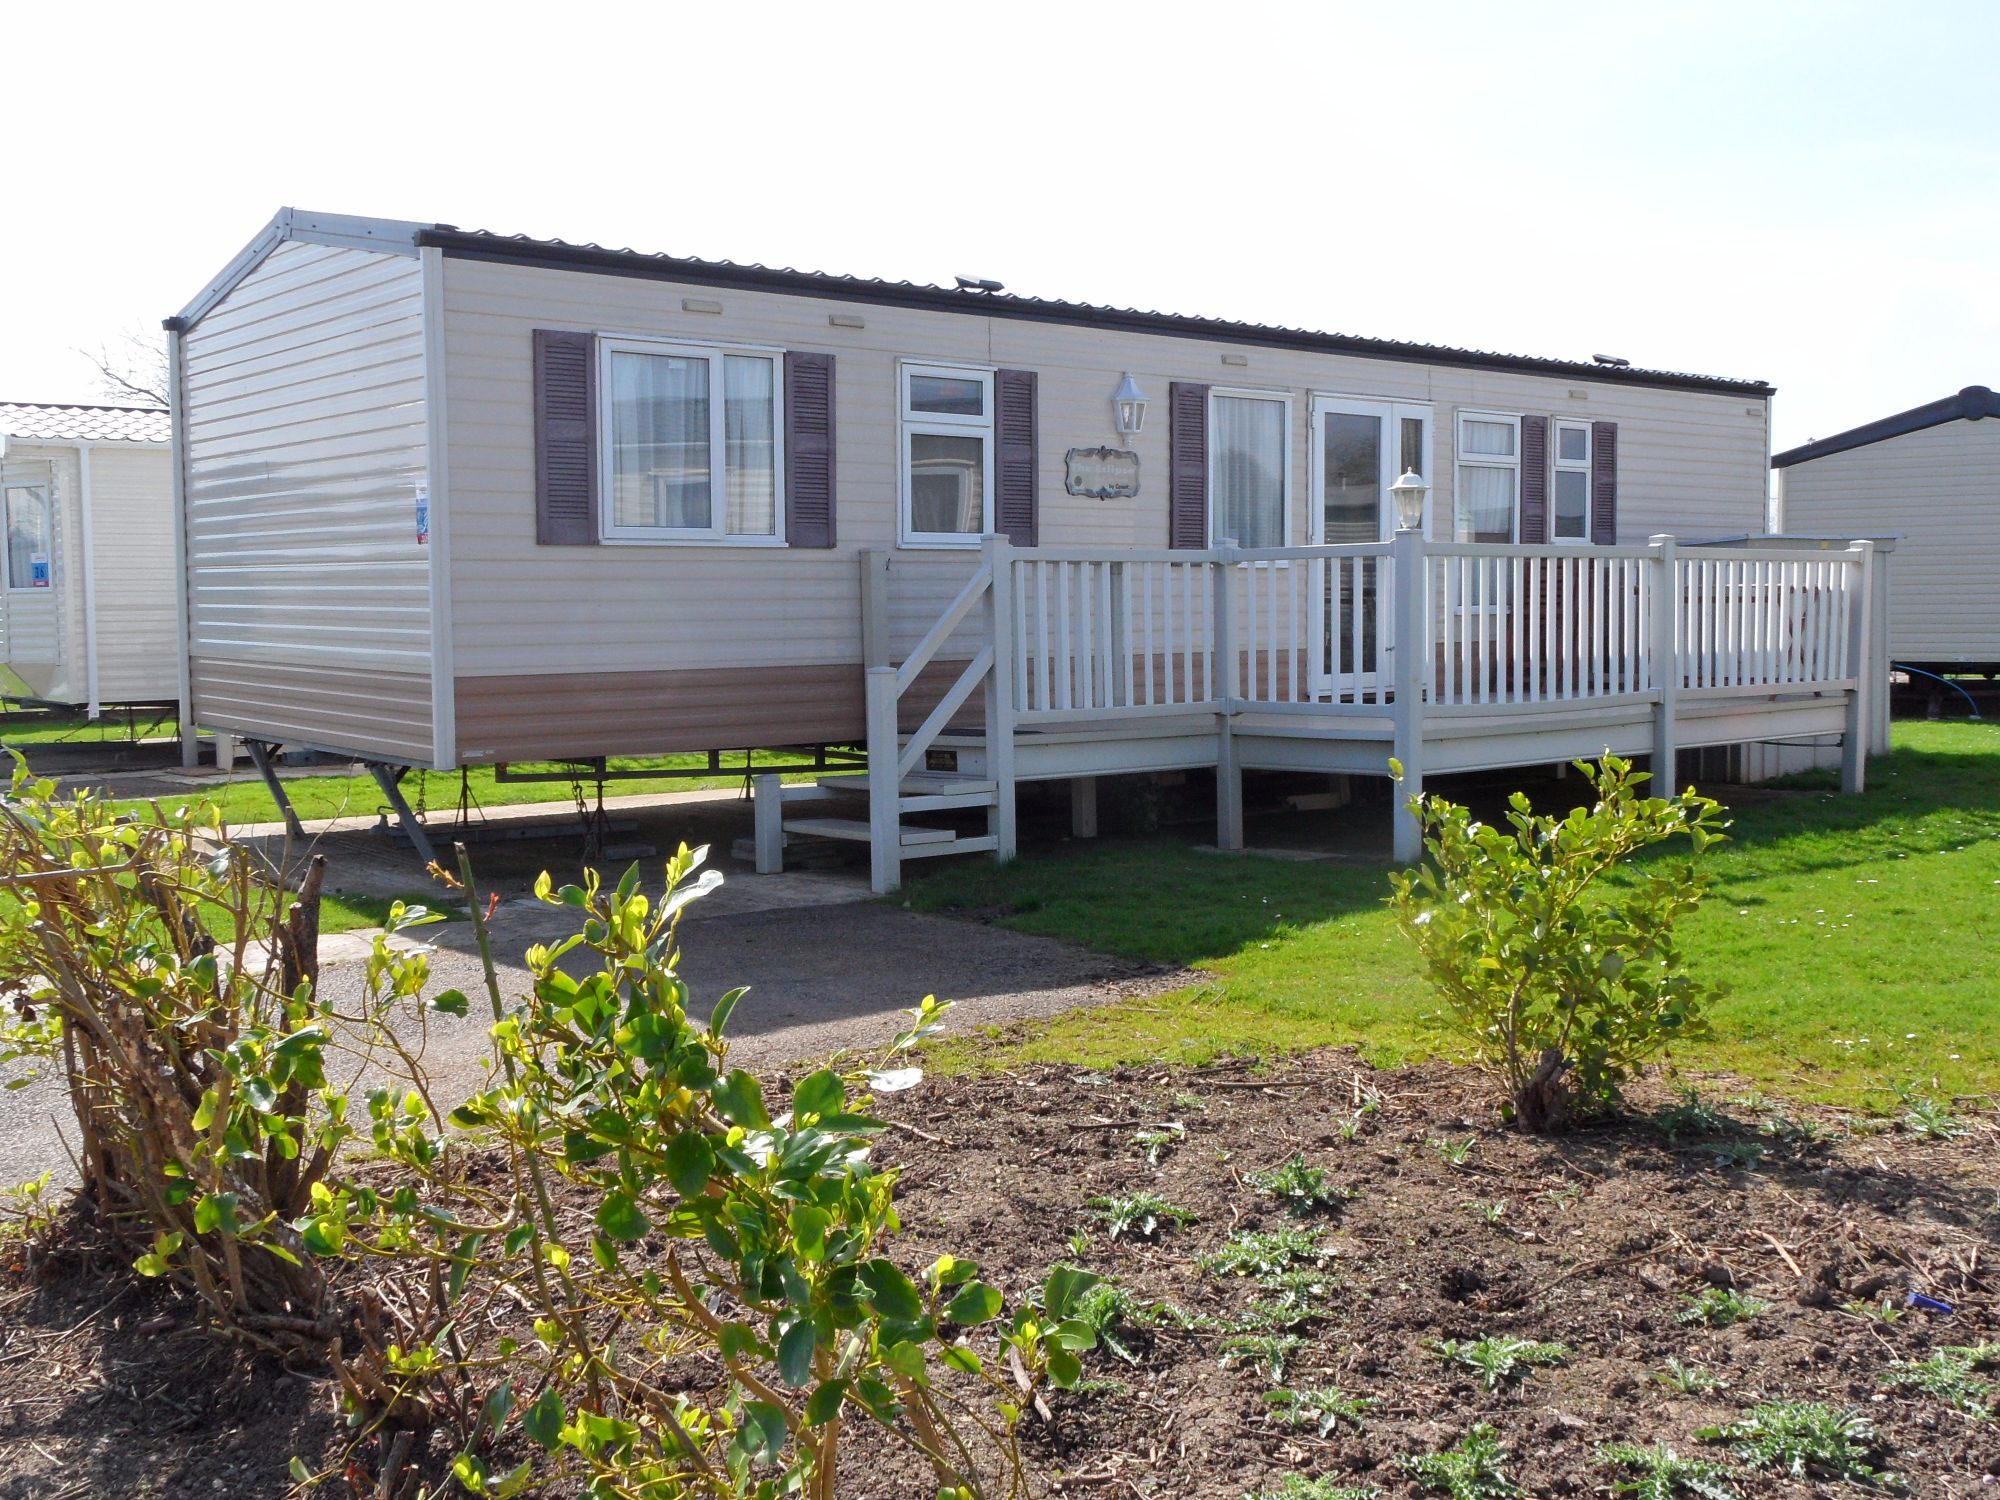 Skegness Caravan Hire